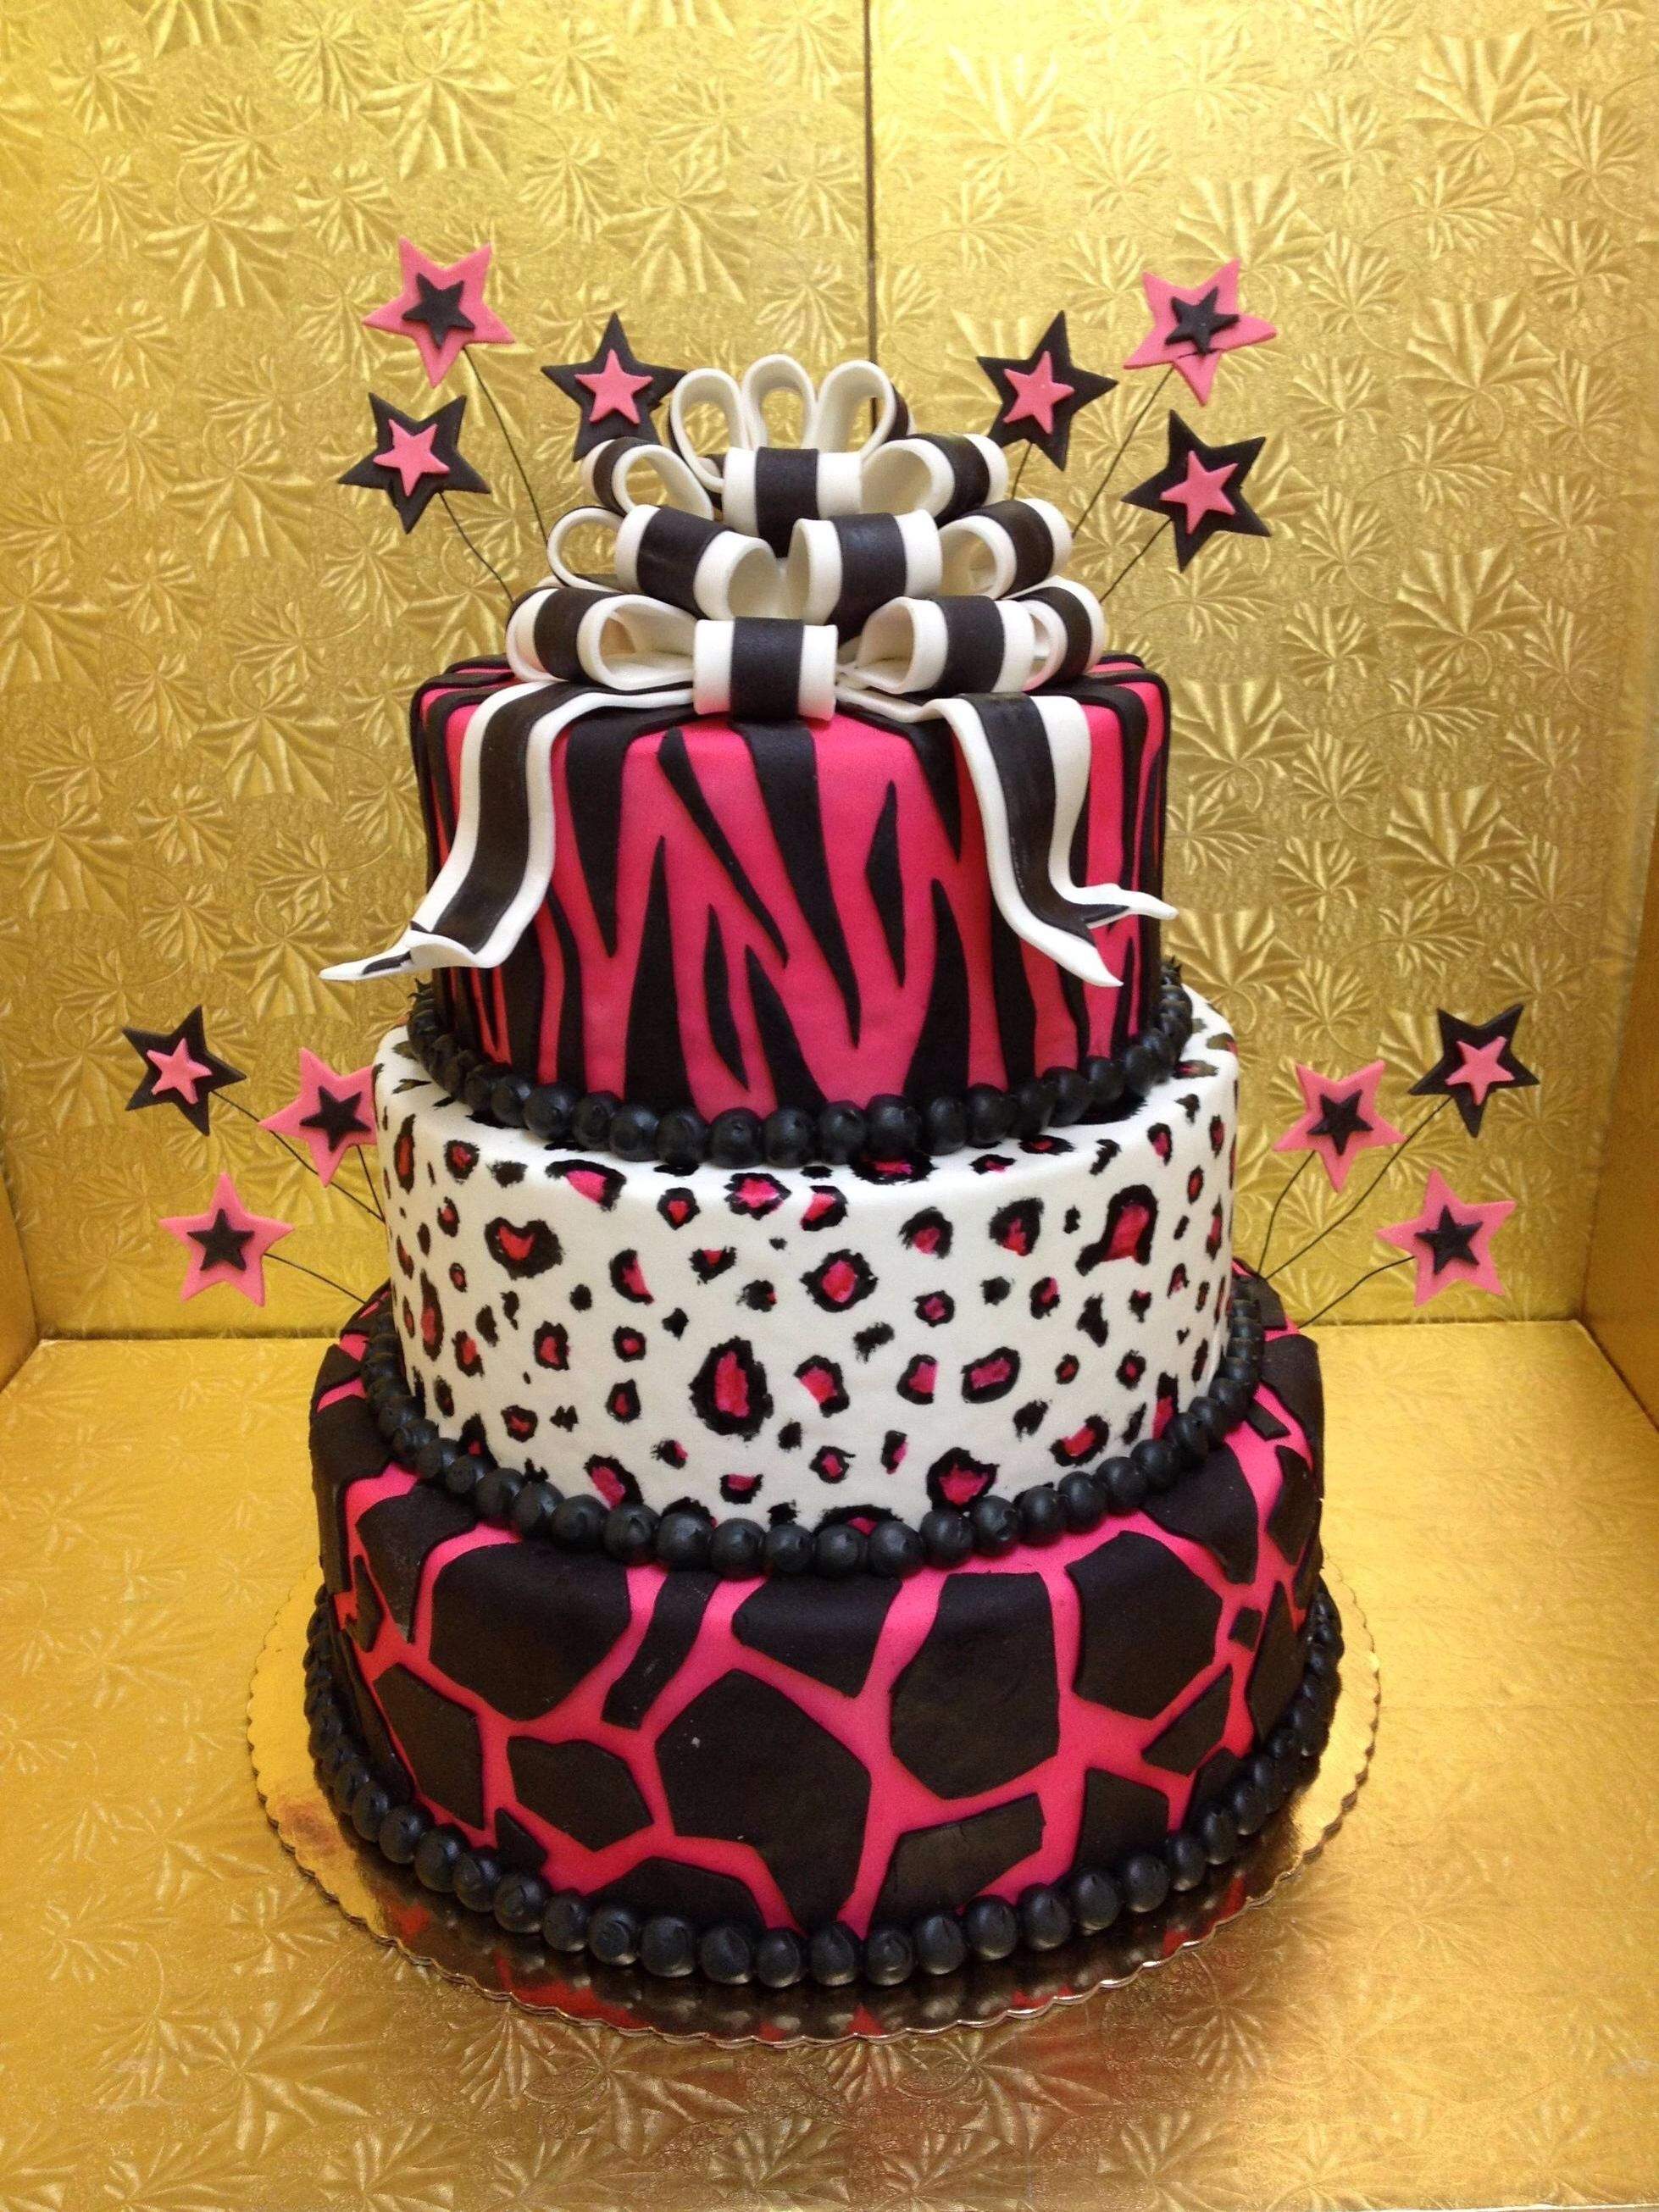 A Teenage Girl Would Love This Cake For Her 16th Birthday